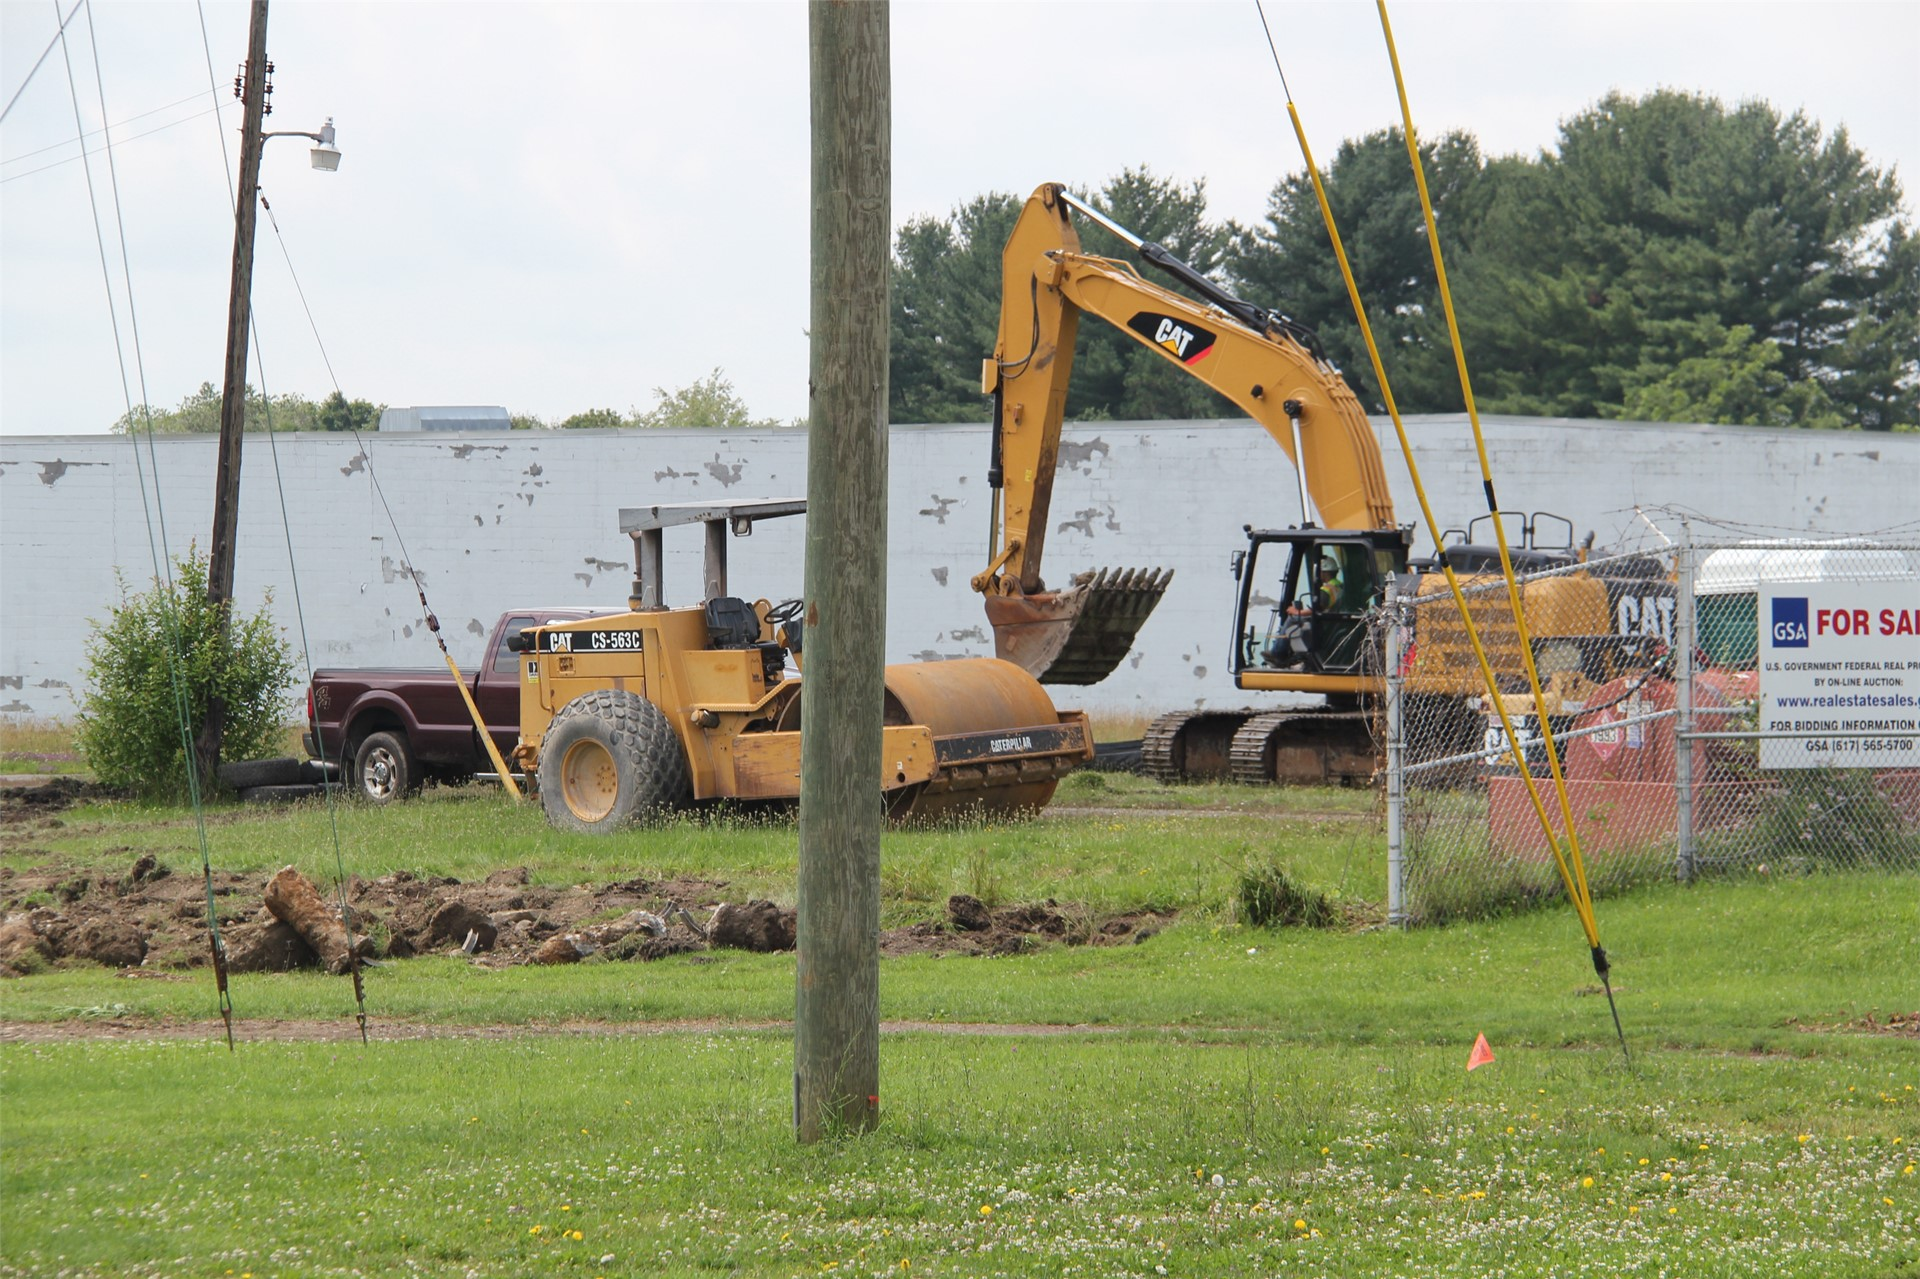 far shot of person inside equipment working on construction outdoors